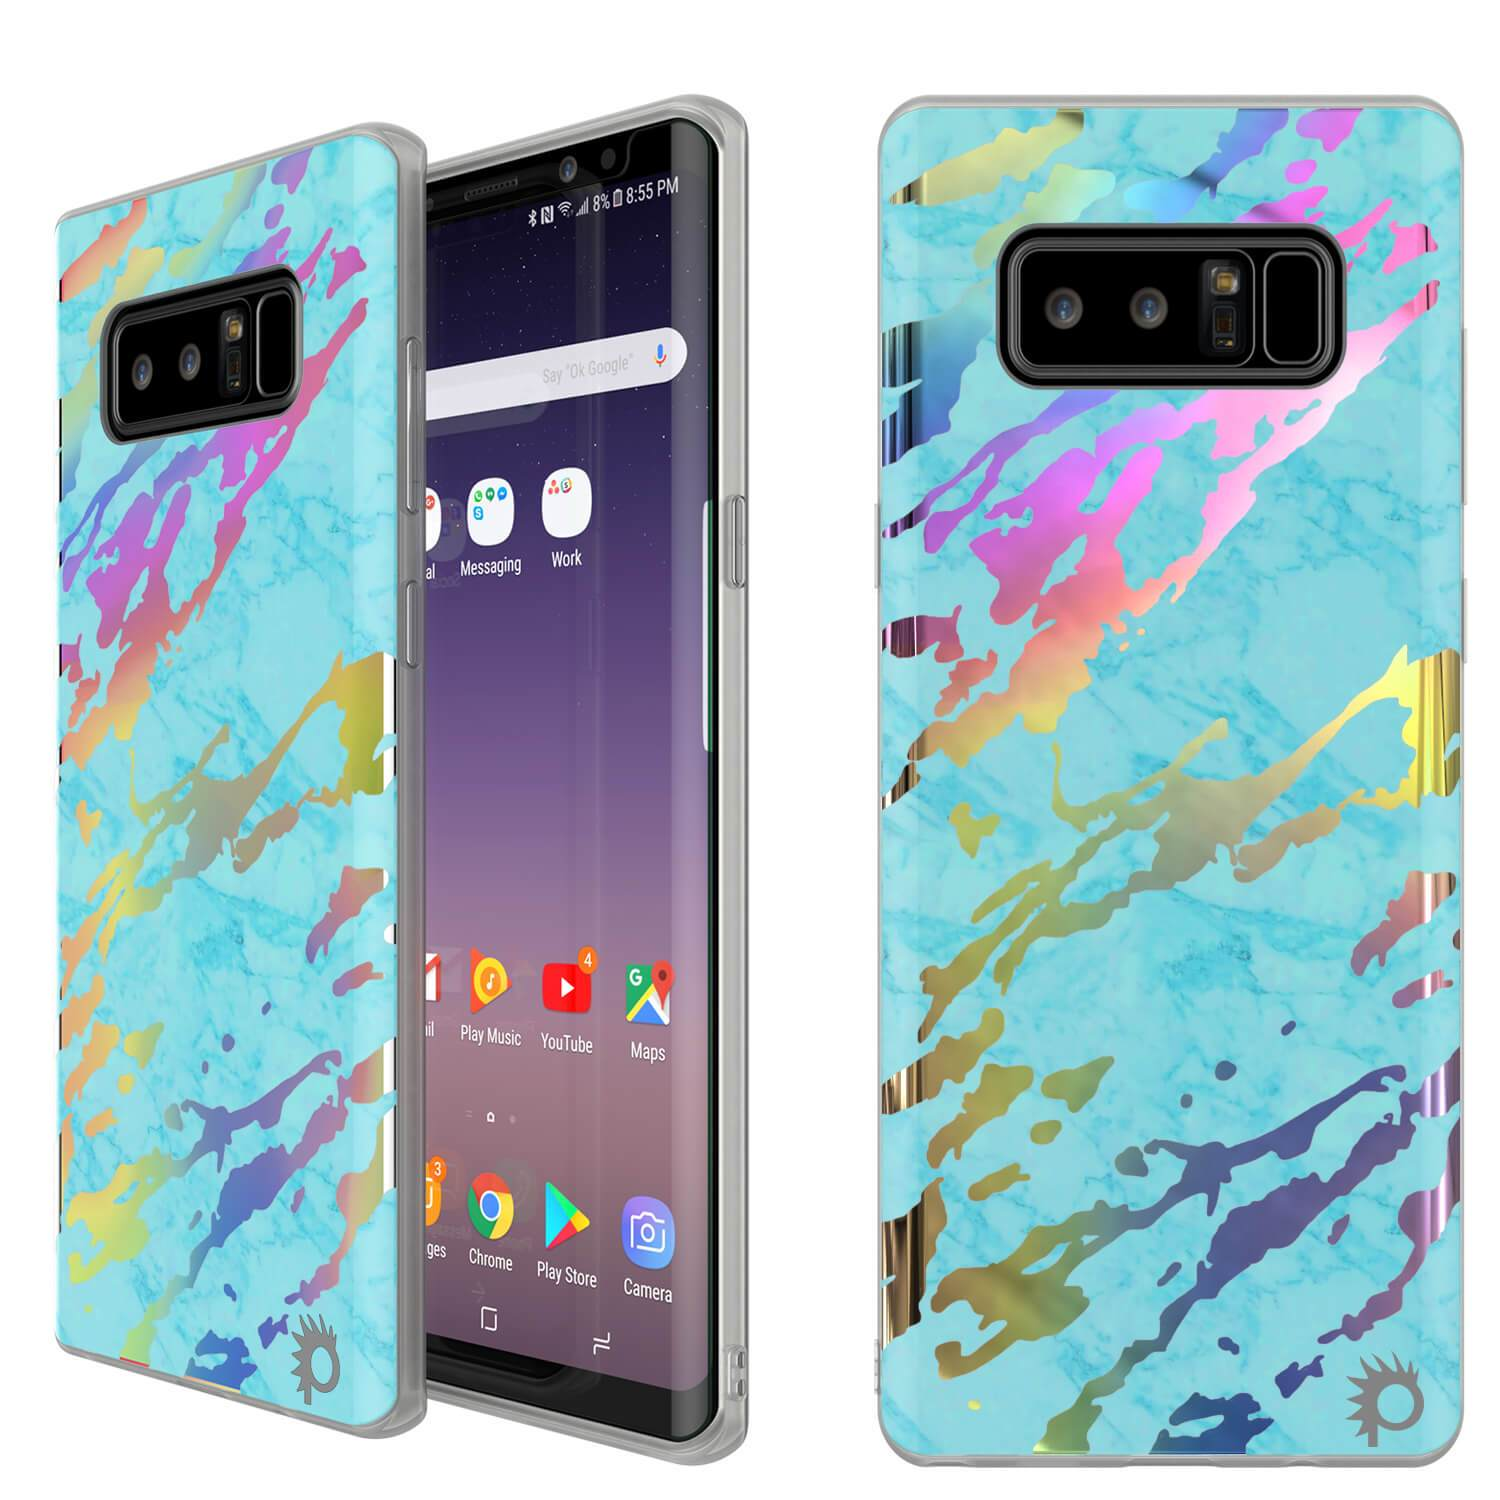 Galaxy Note 8 Marble Case, Protective Full Body Cover [Teal Onyx]